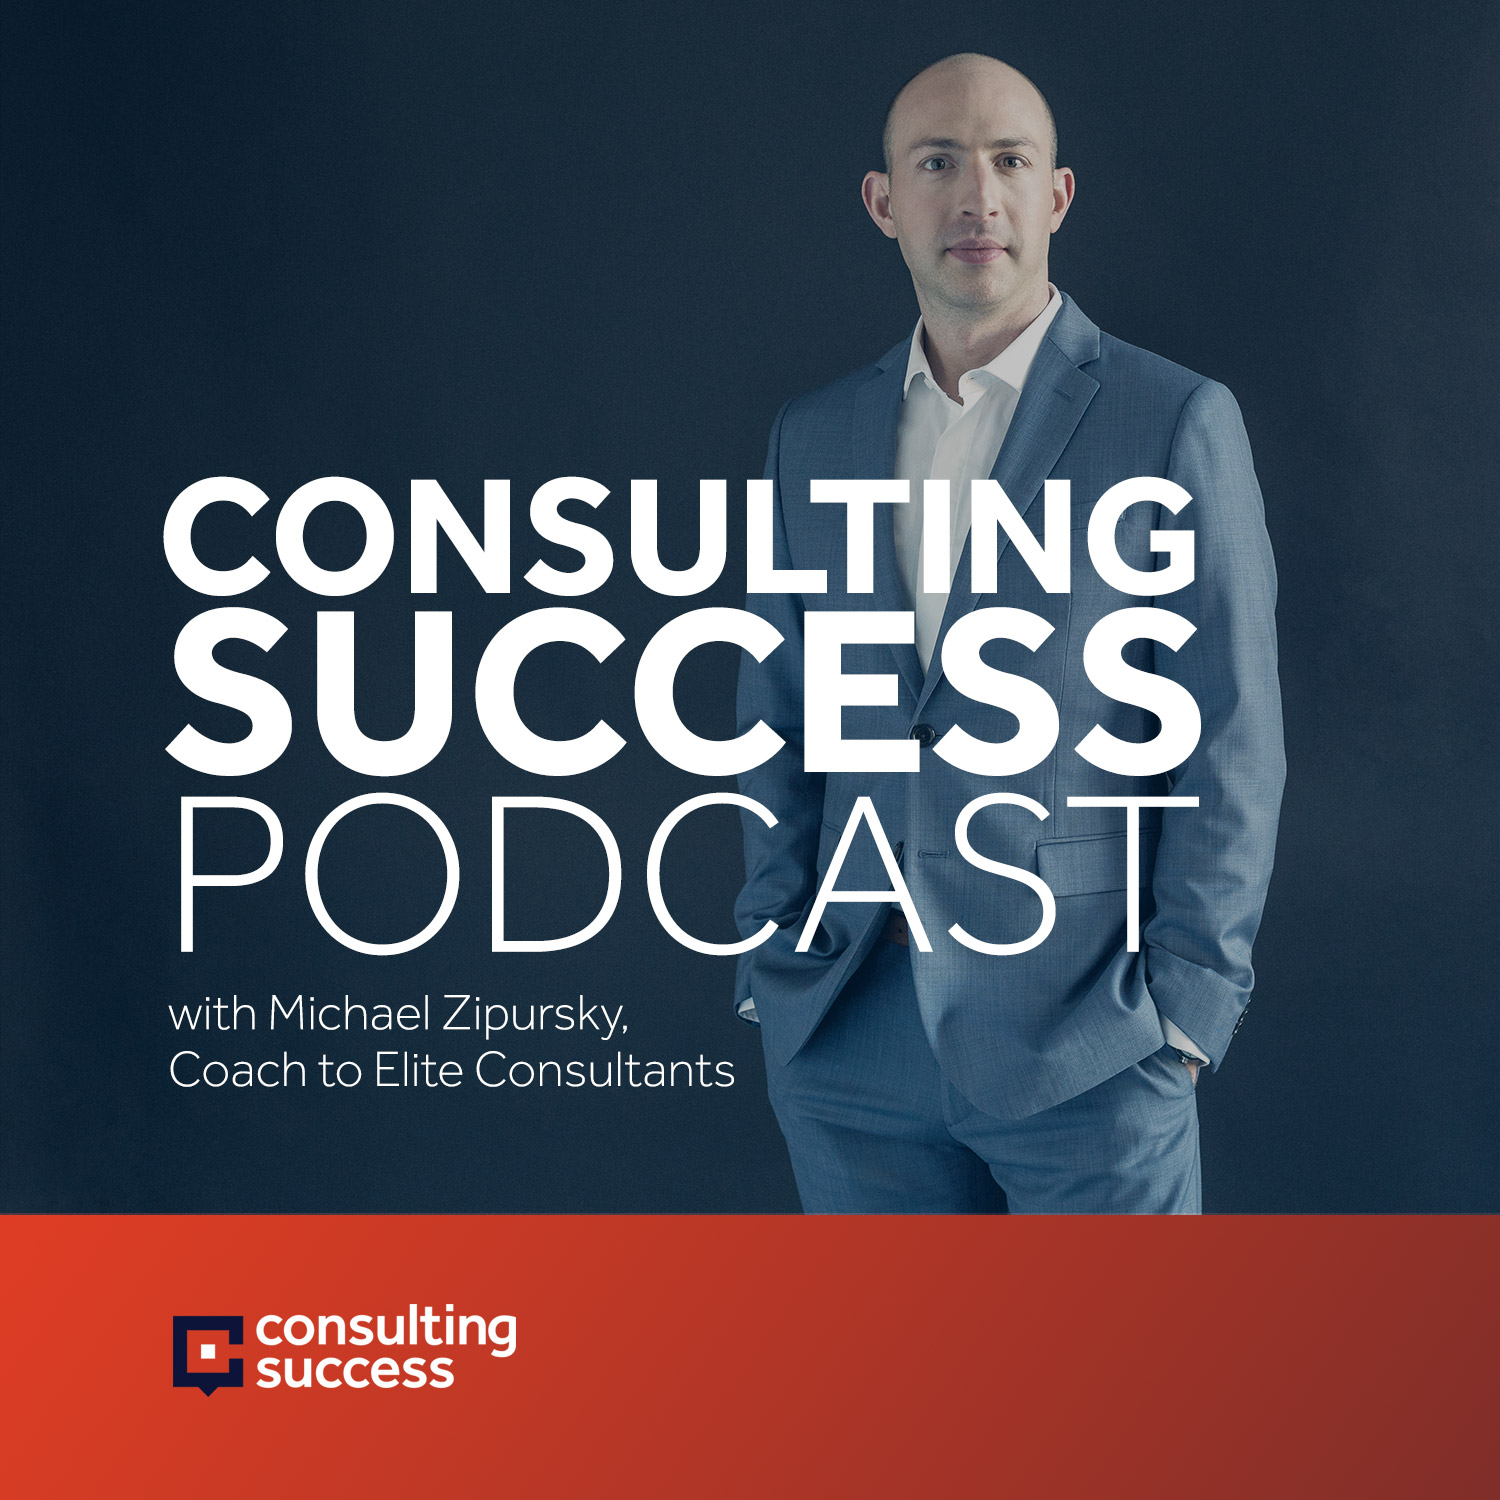 $100M Business Growth Strategies For Consultants With Cameron Herold: Podcast #154